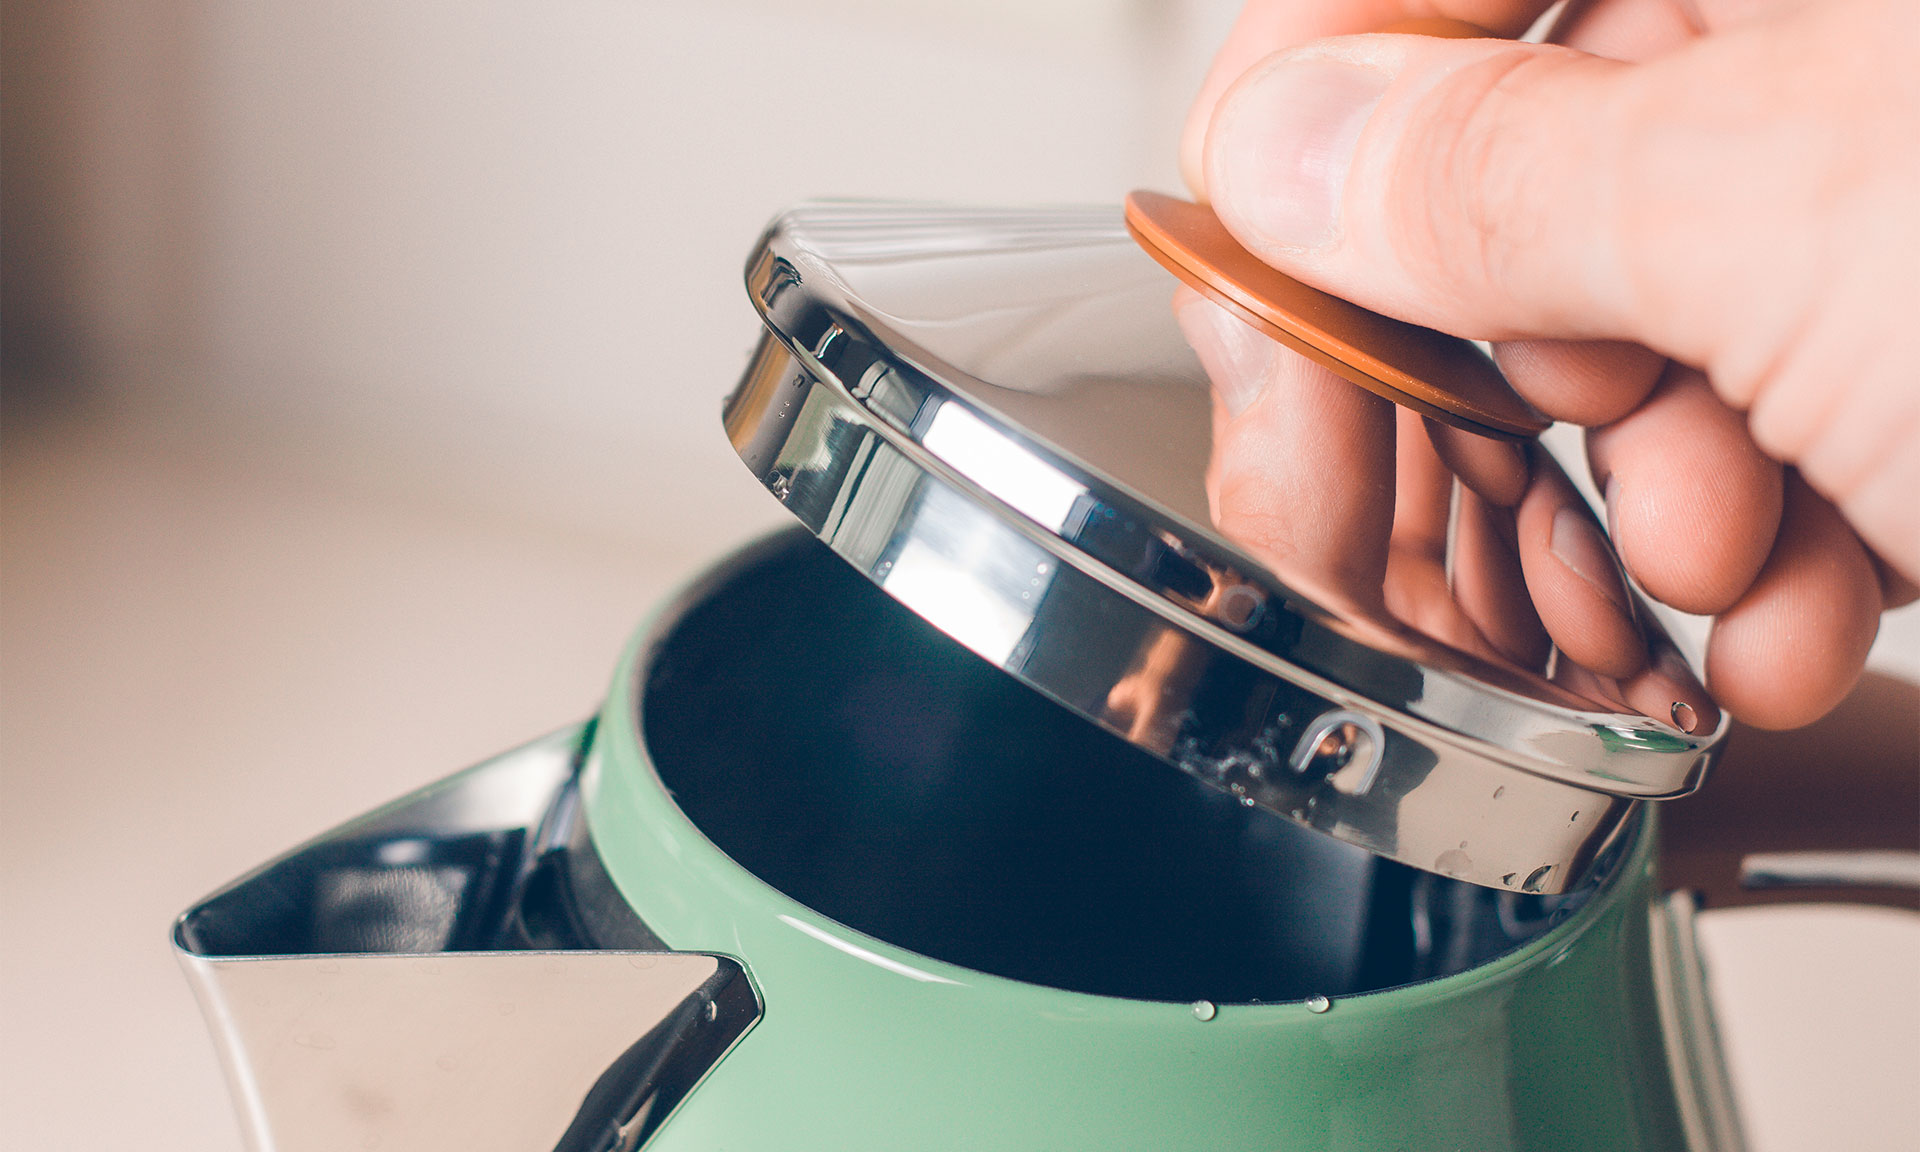 Opening a kettle lid